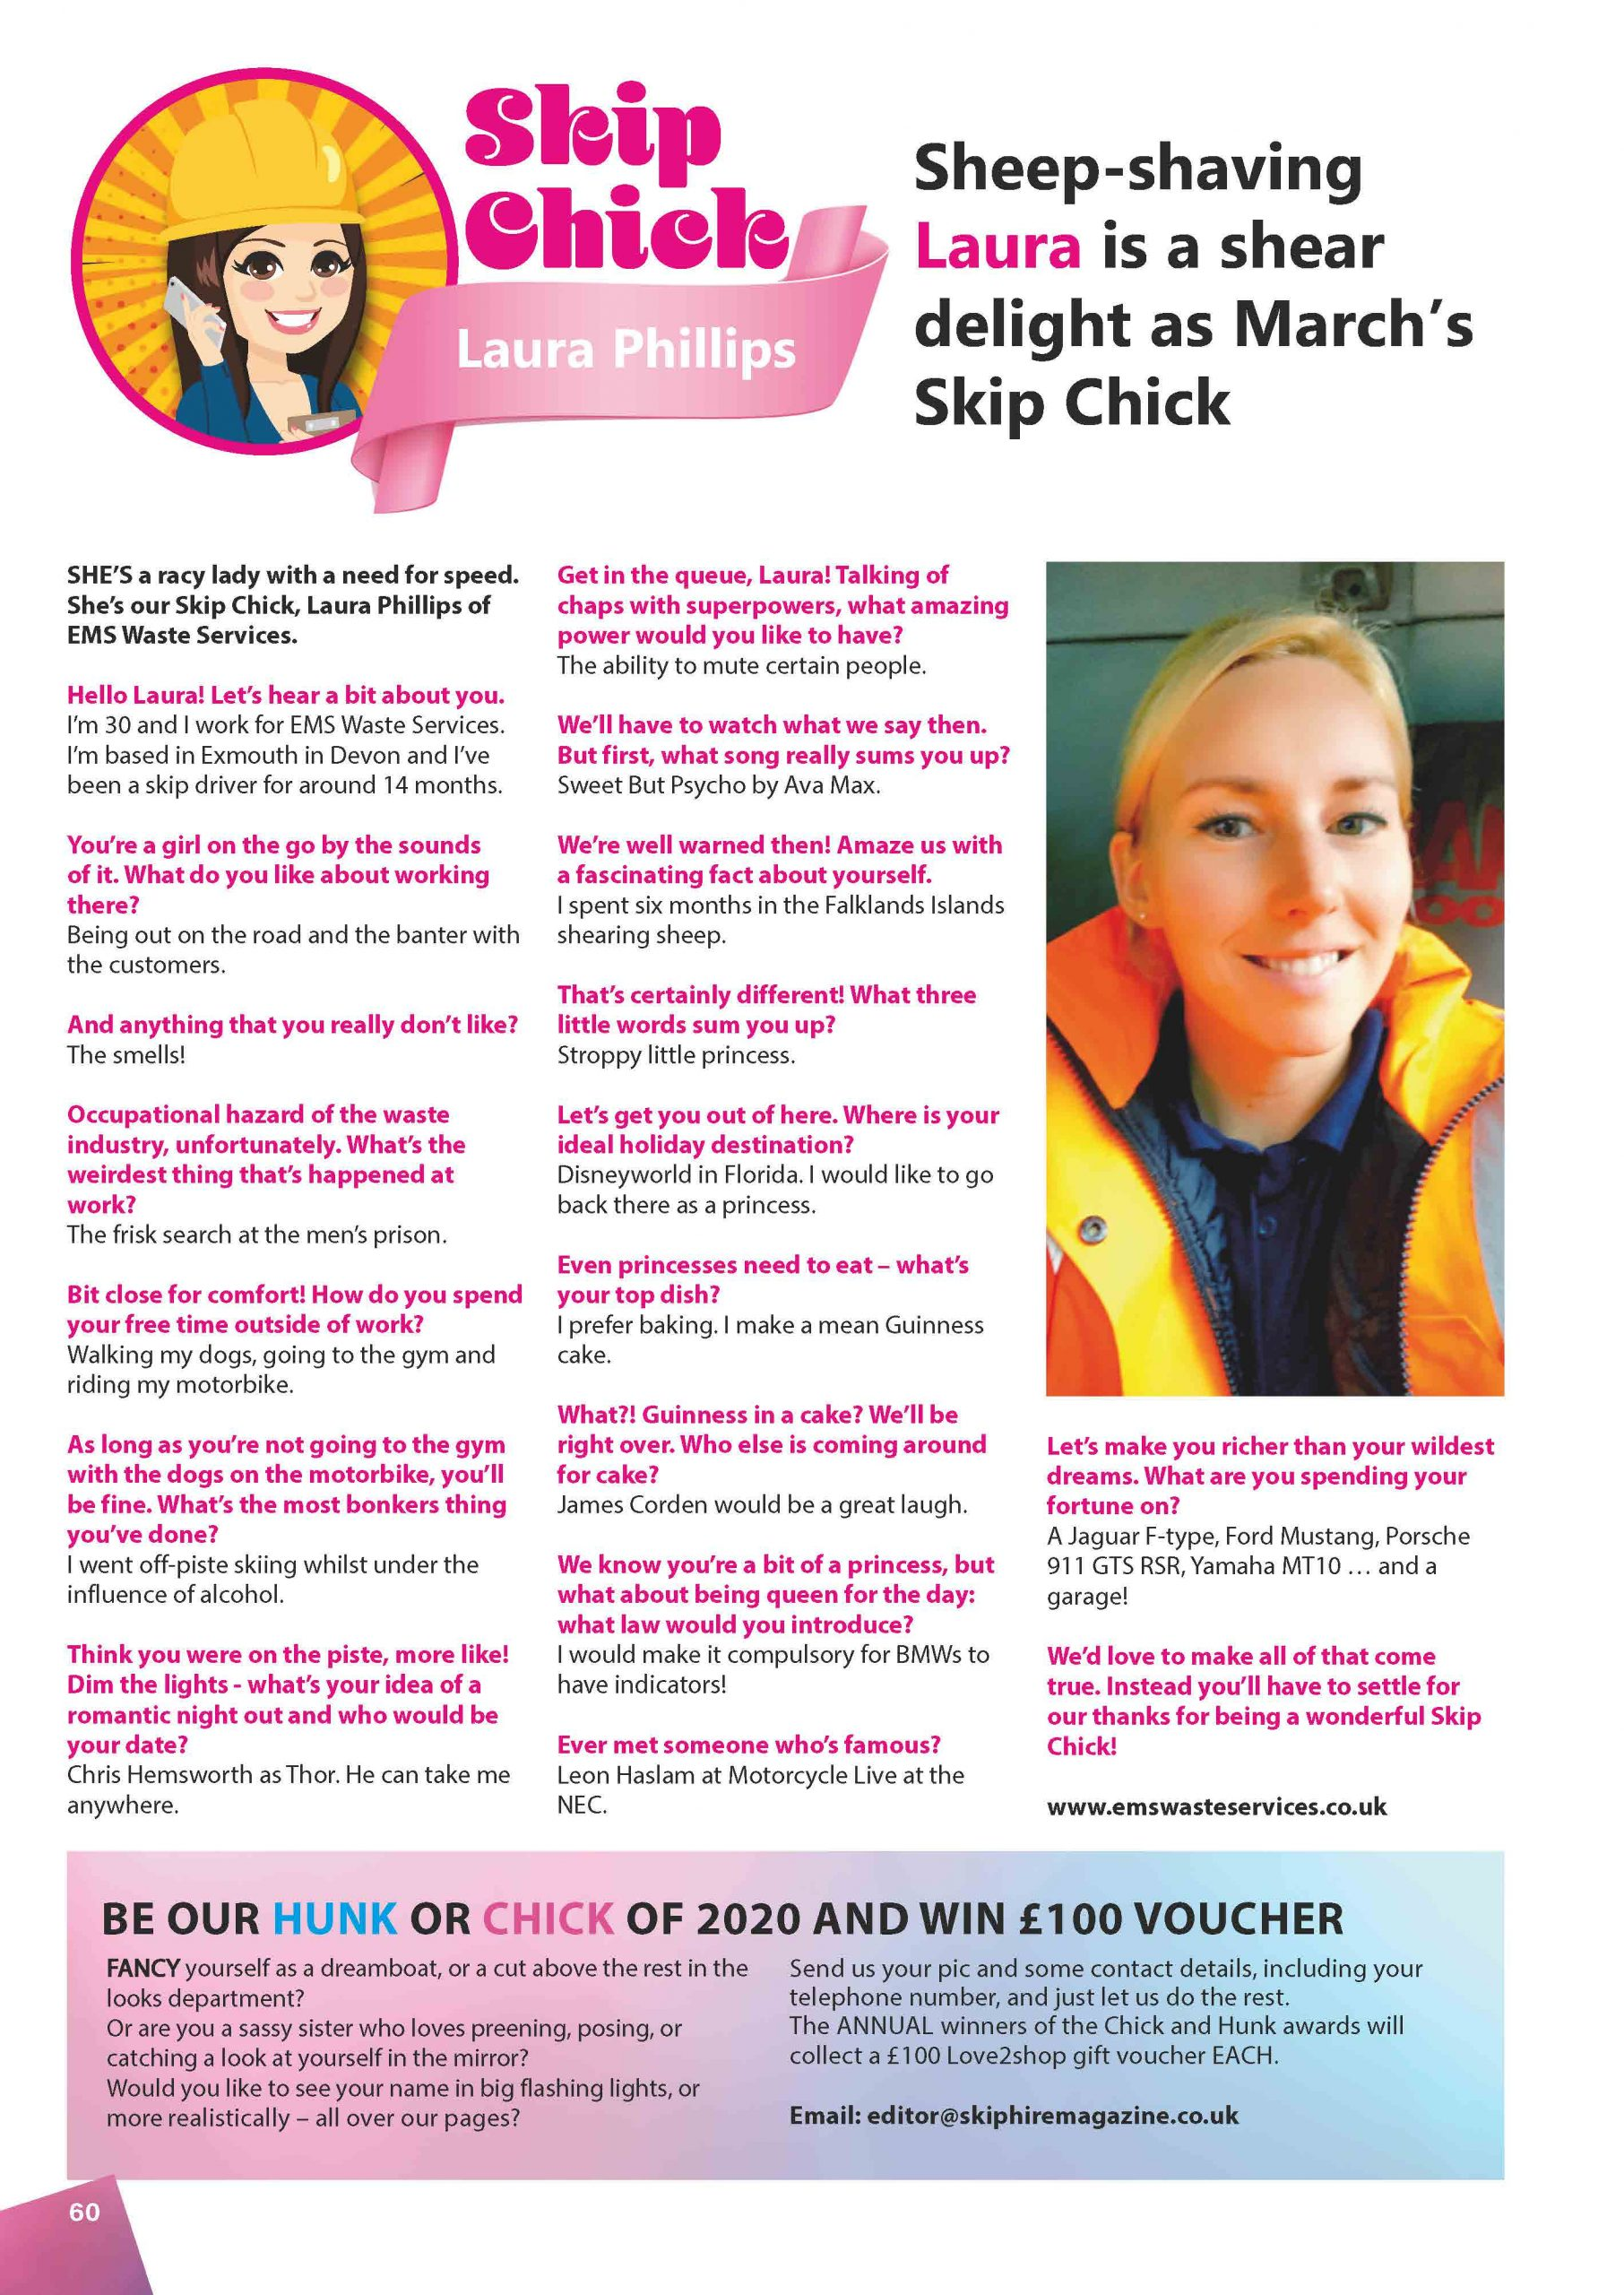 March Skip Chick: Laura Phillips of EMS Waste Services